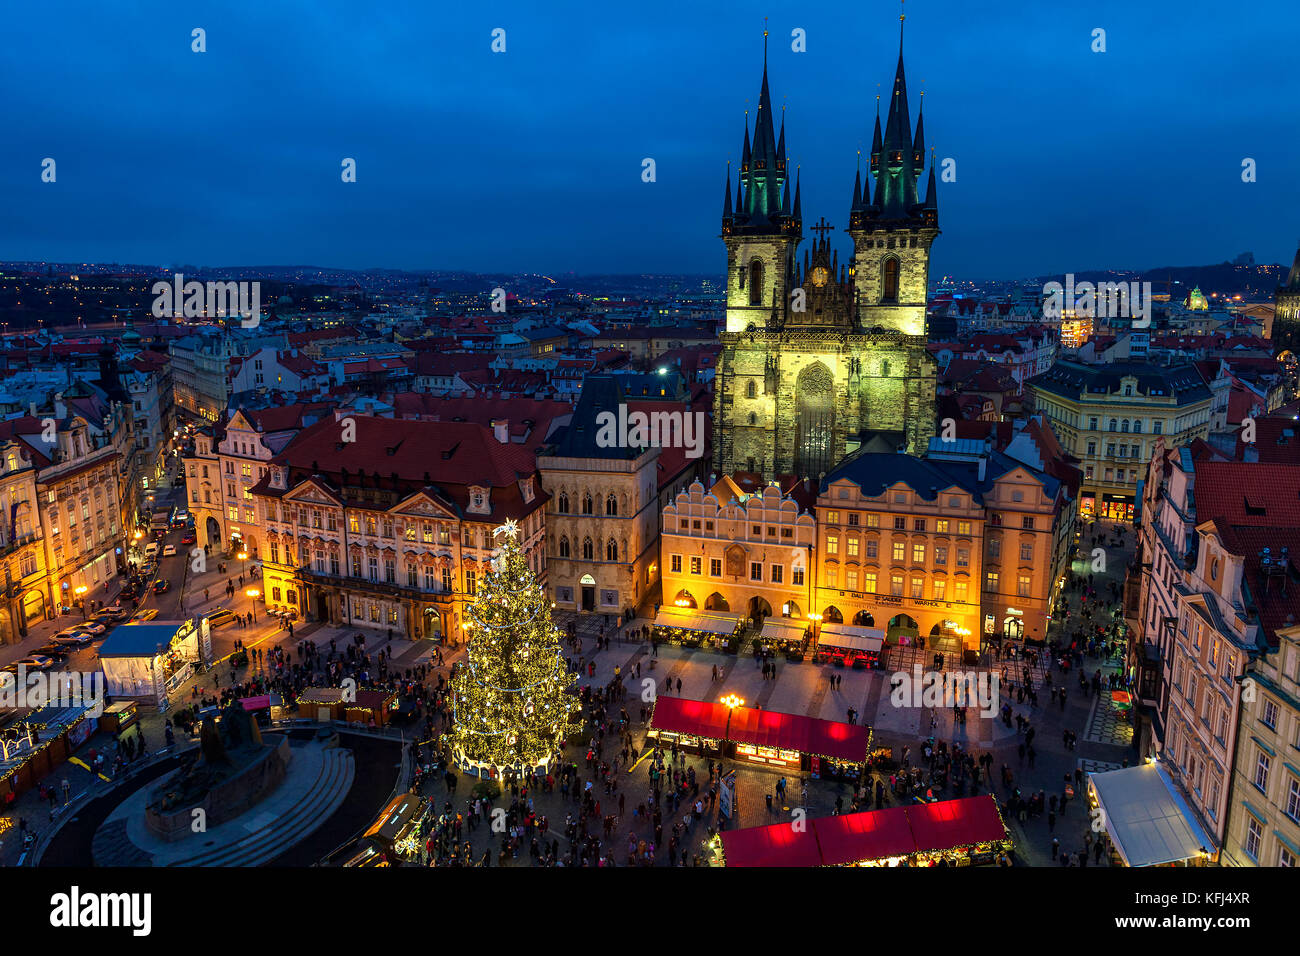 PRAGUE, CZECH REPUBLIC - DECEMBER 10, 2015: Evening view from above of traditional Christmas market at Old Town - Stock Image